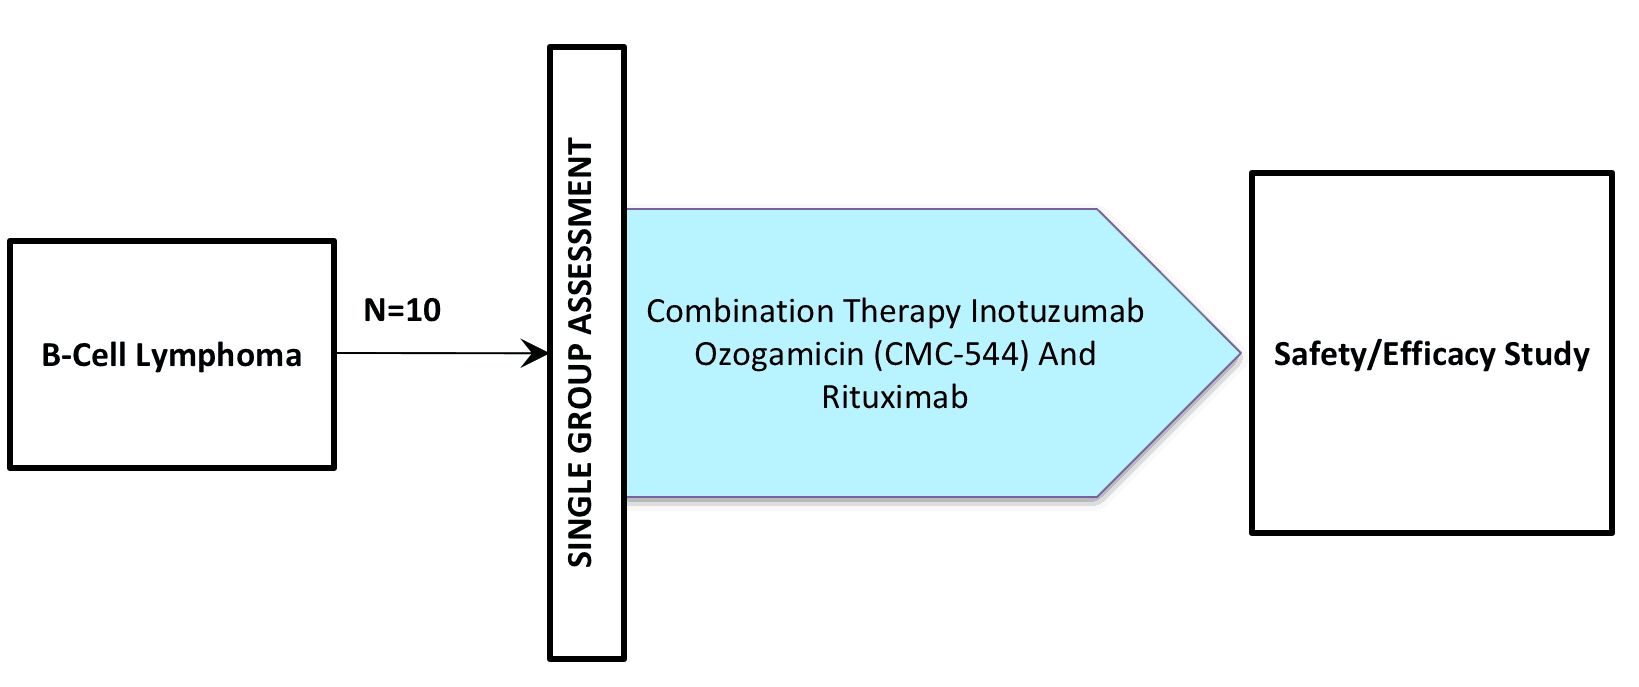 NCT00724971 (Clinical Trial Inotuzumab Ozogamicin / CMC-544)